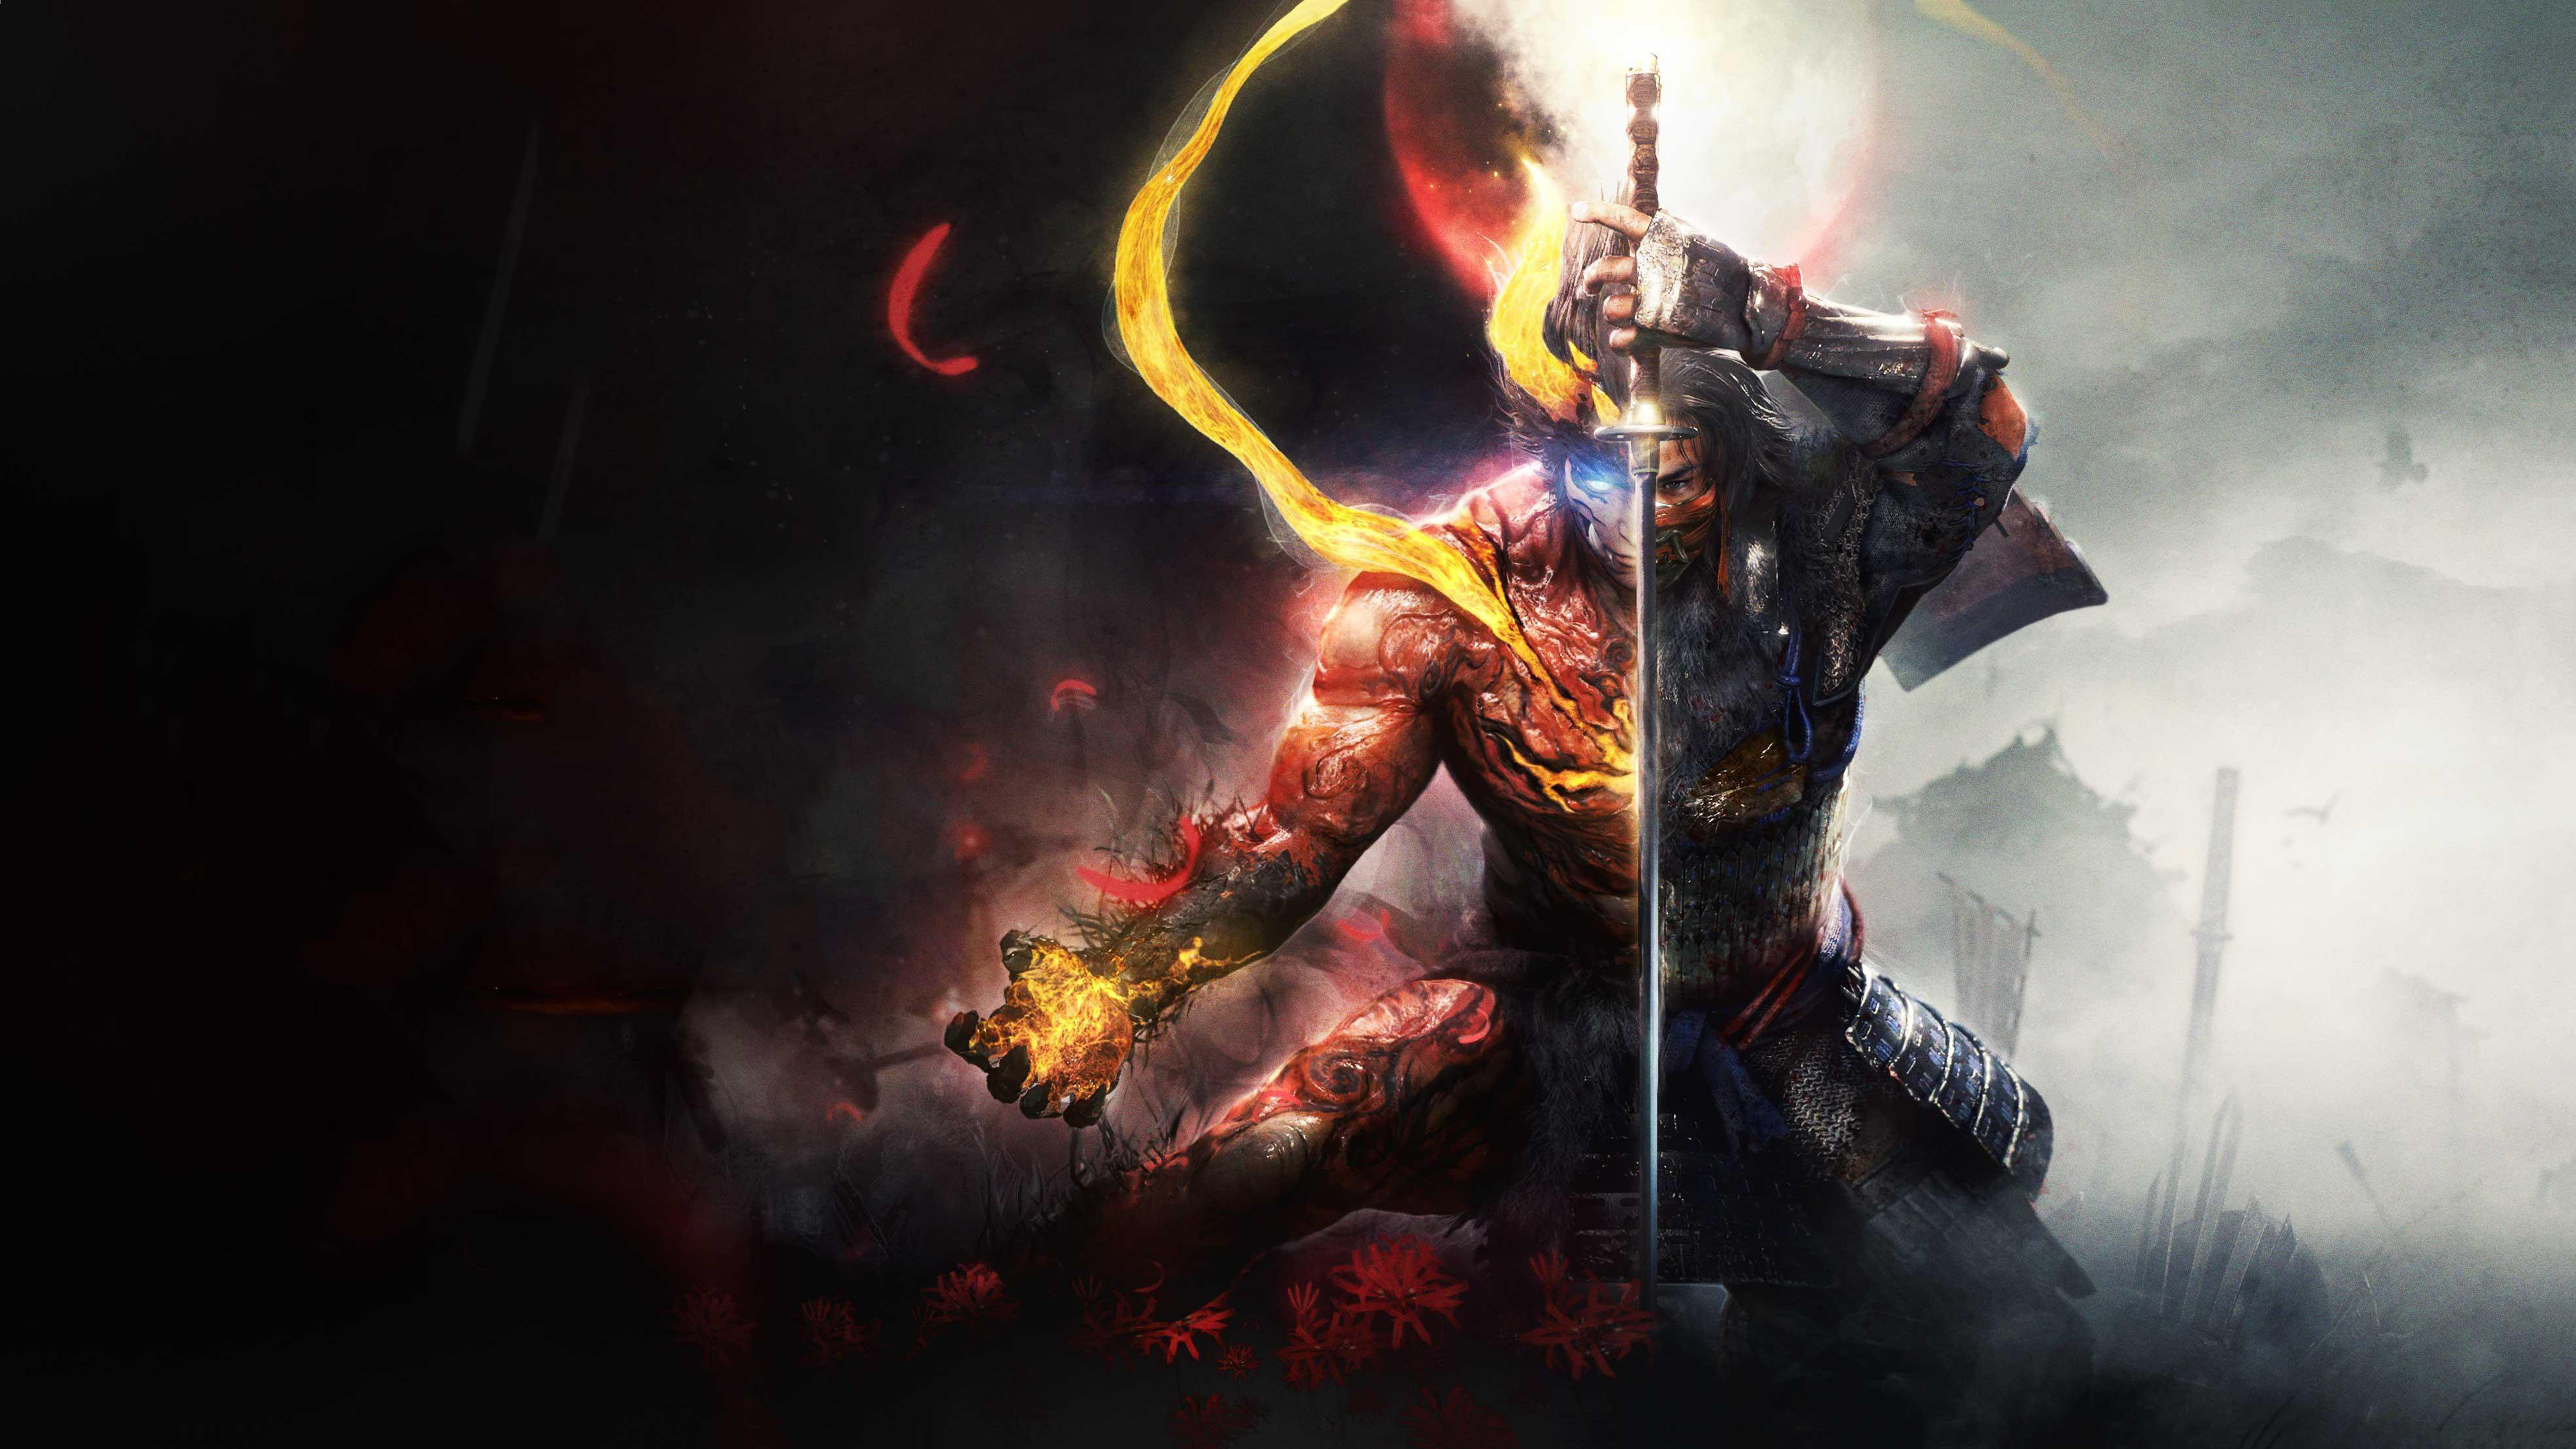 nioh 2 key art 1568057384 - Nioh 2 Key Art - nioh wallpapers, nioh 2 wallpapers, hd-wallpapers, games wallpapers, 4k-wallpapers, 2019 games wallpapers